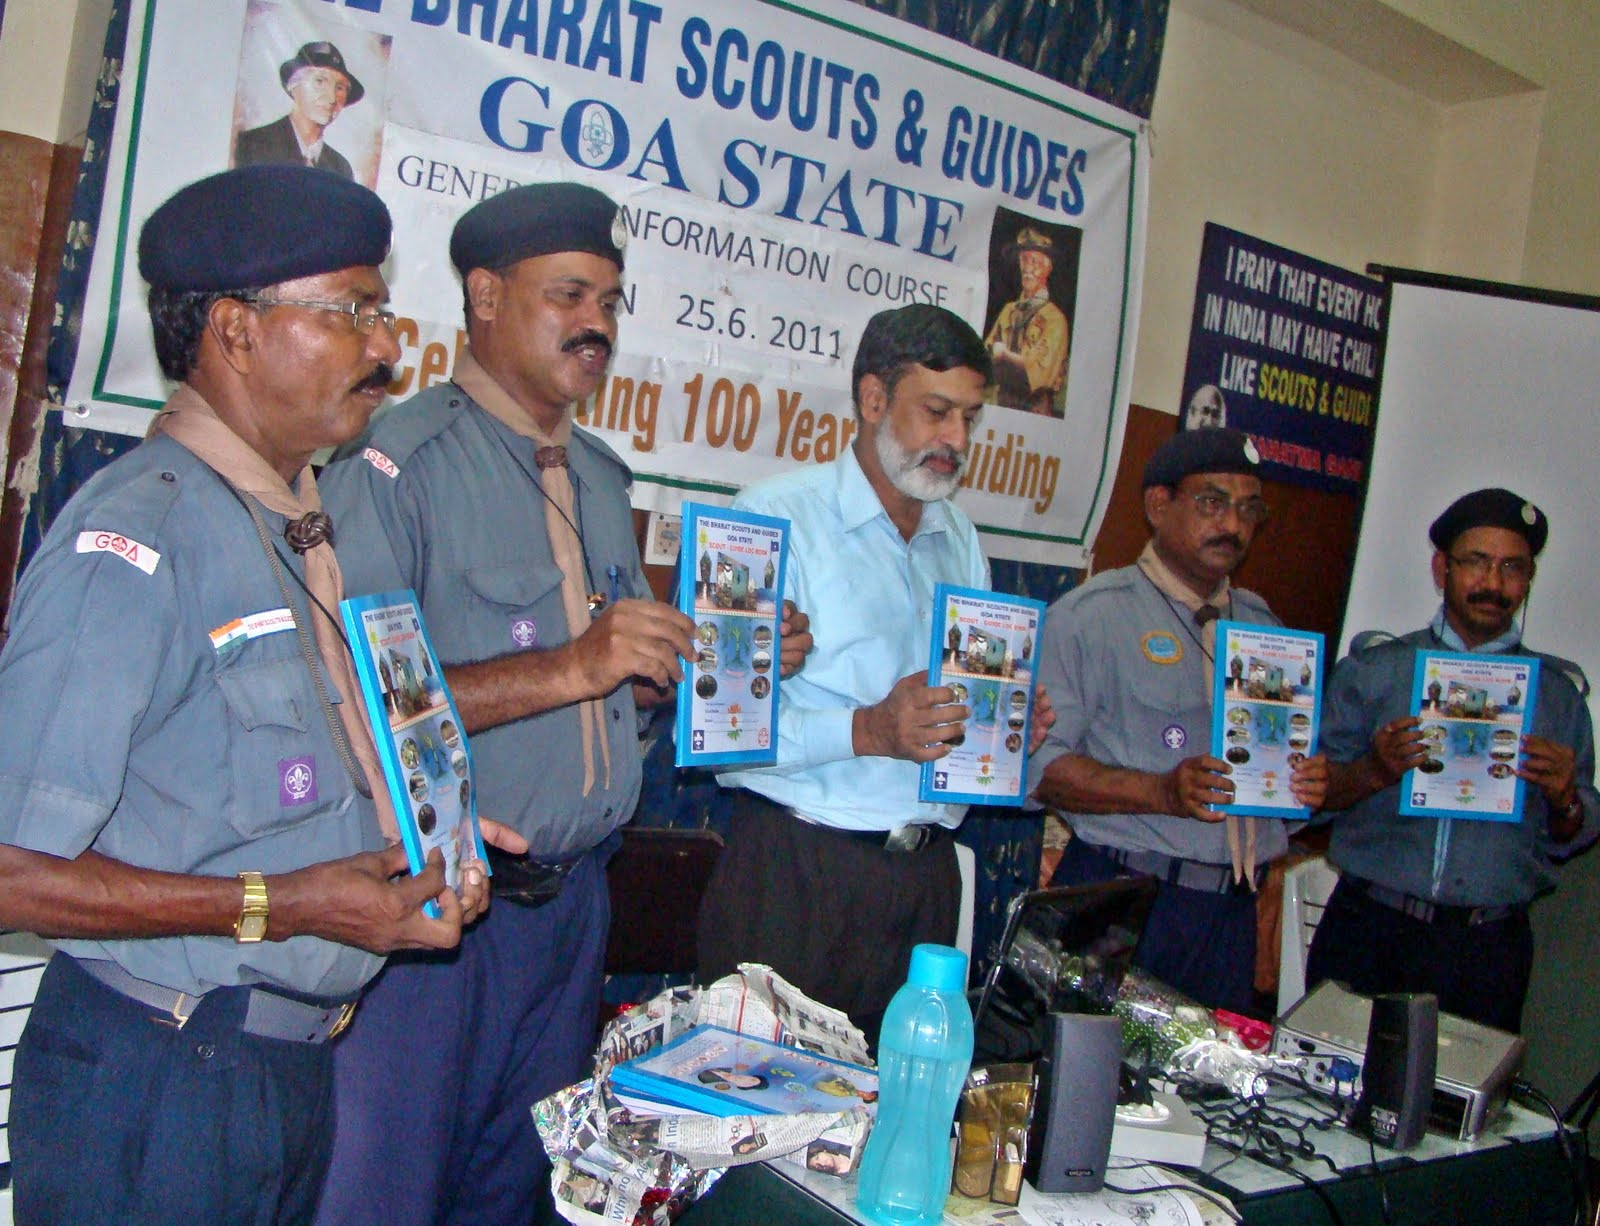 bharat scouts and guides goa state scout and guide log book released rh bsggoastate blogspot com bharat scouts and guides logbook pdf in malayalam bharat scouts and guides logbook free download